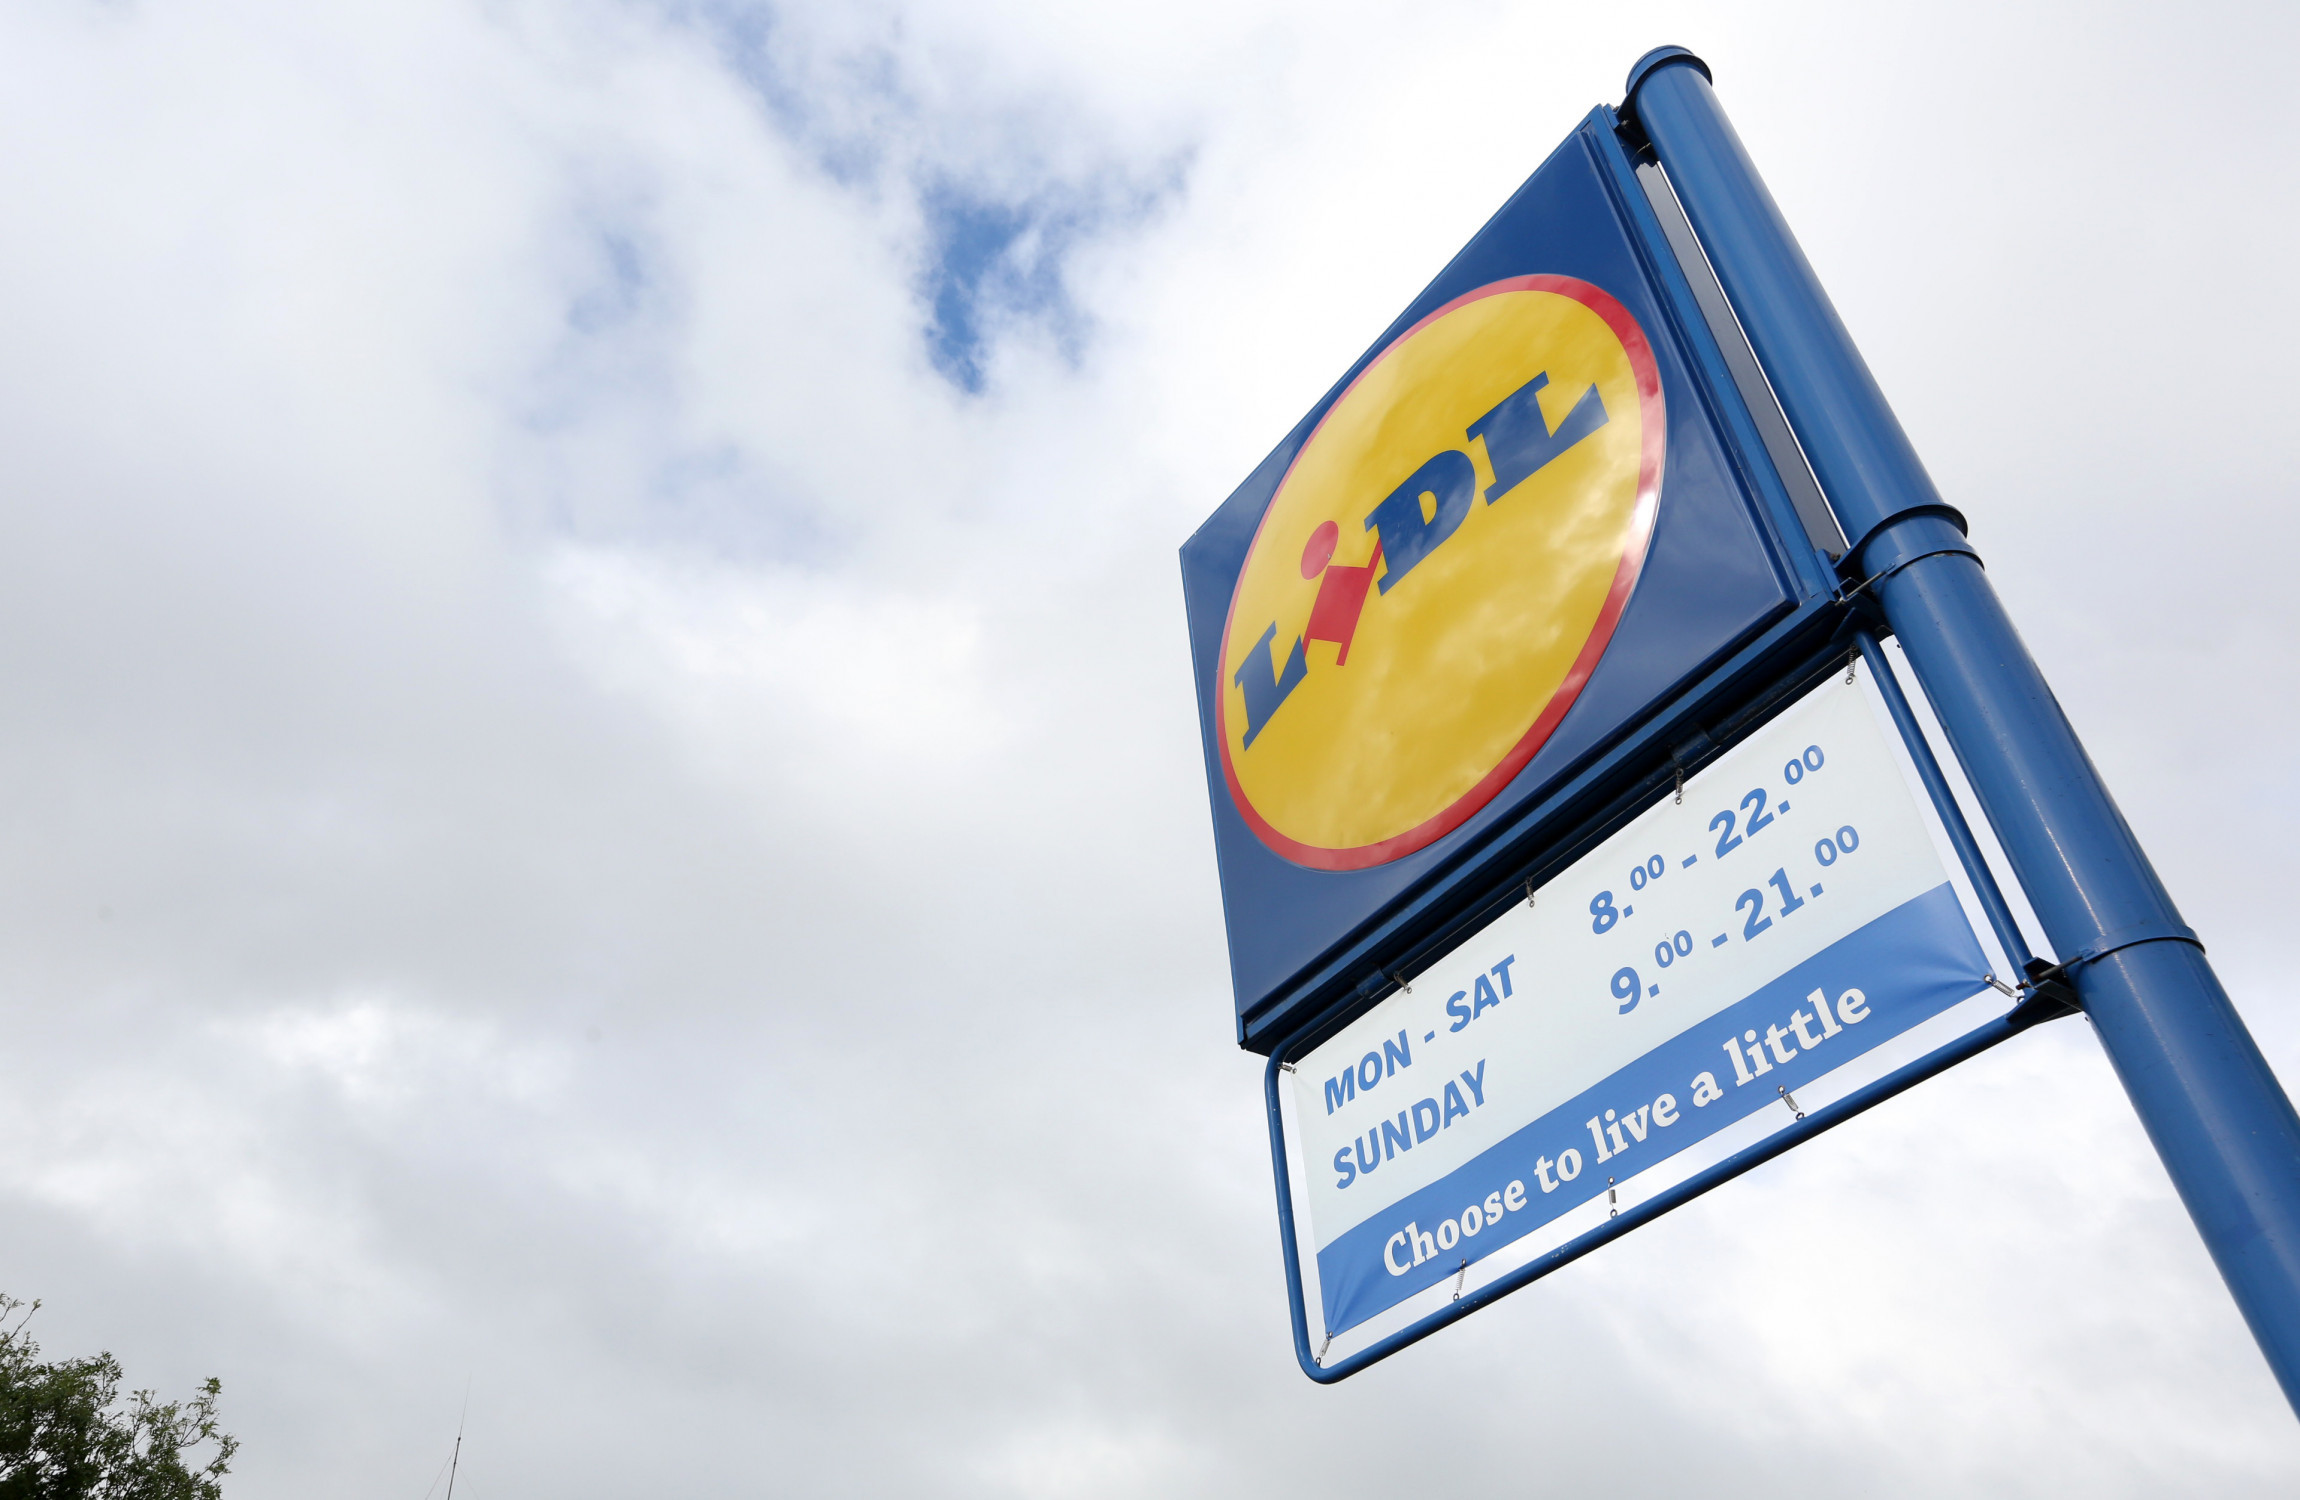 No Injuries Reported In Bizarre Attack On Lidl Store In Dublin